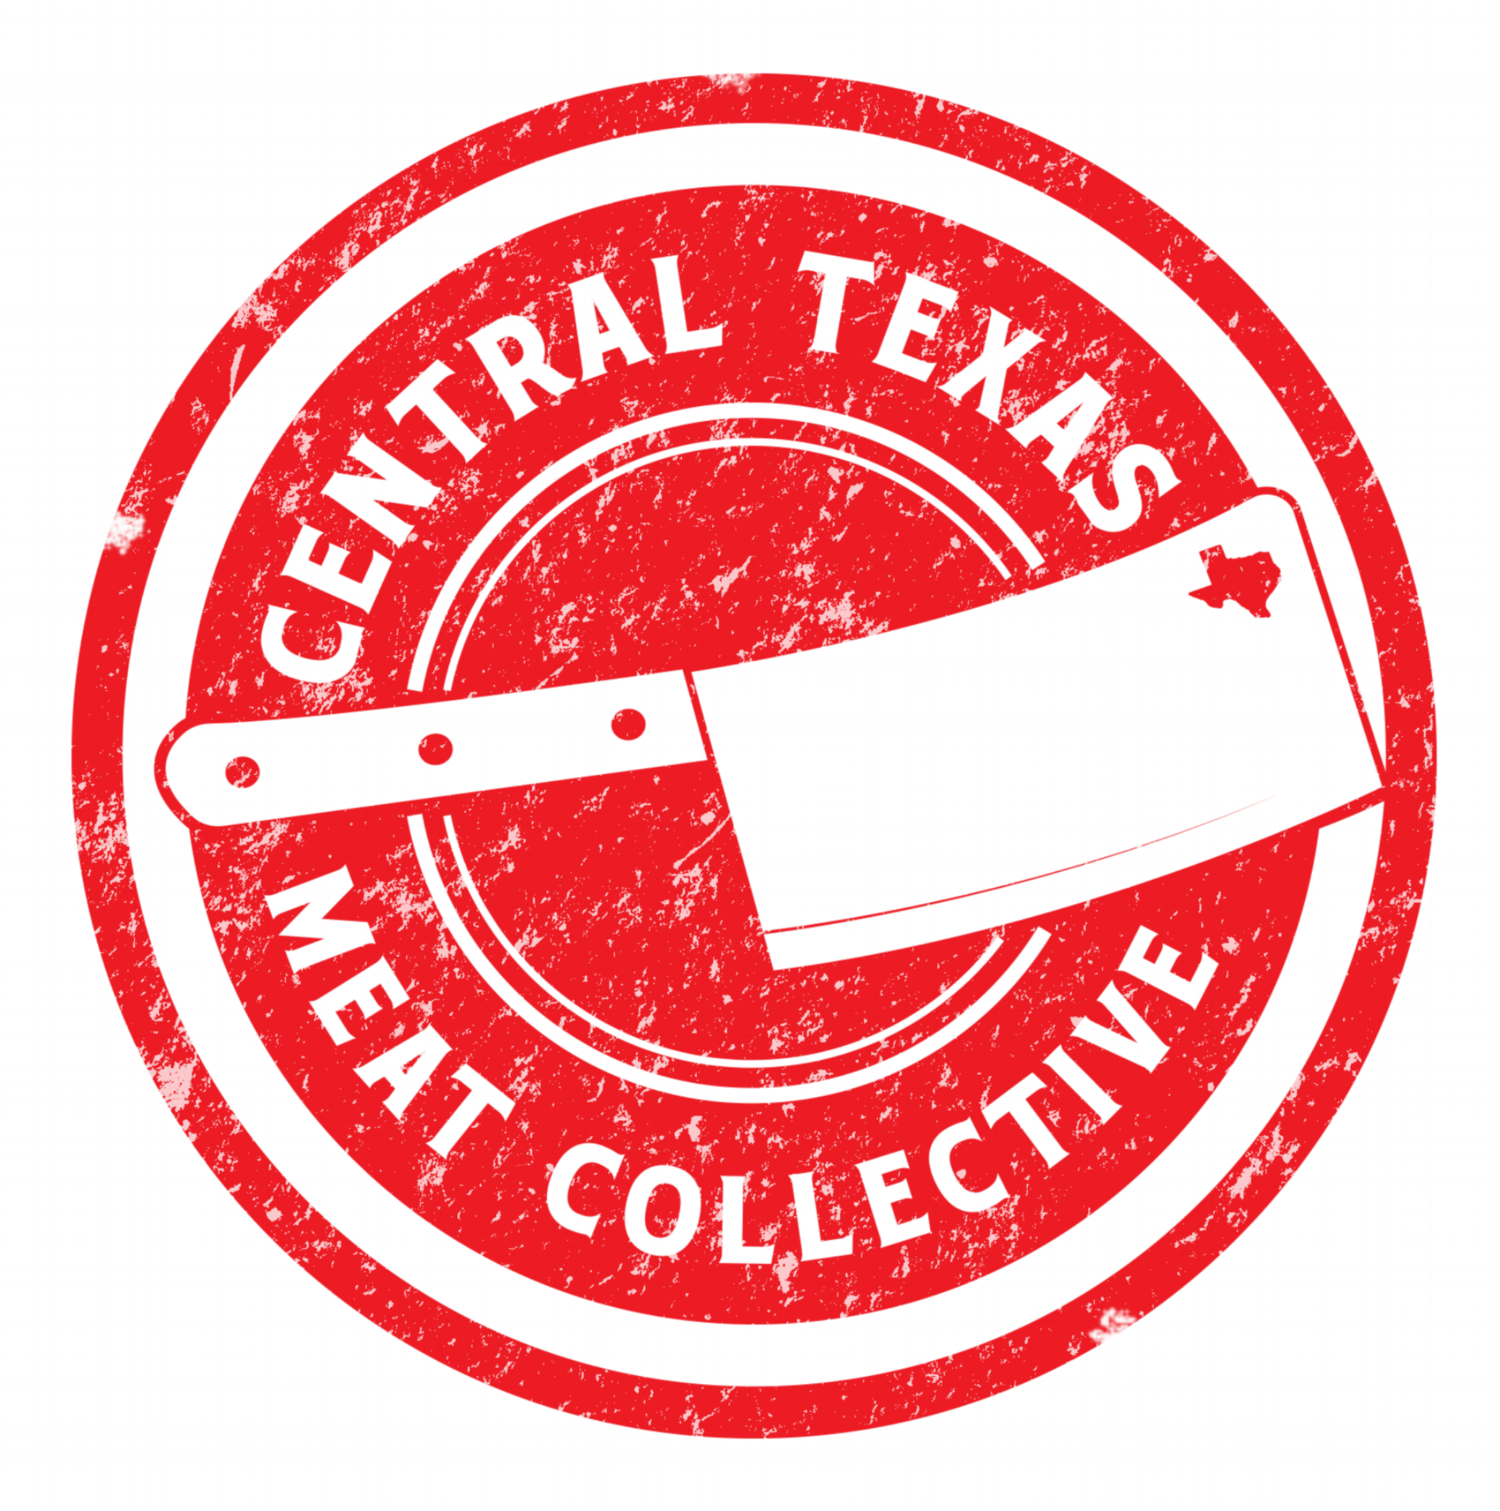 Central Texas Meat Collective